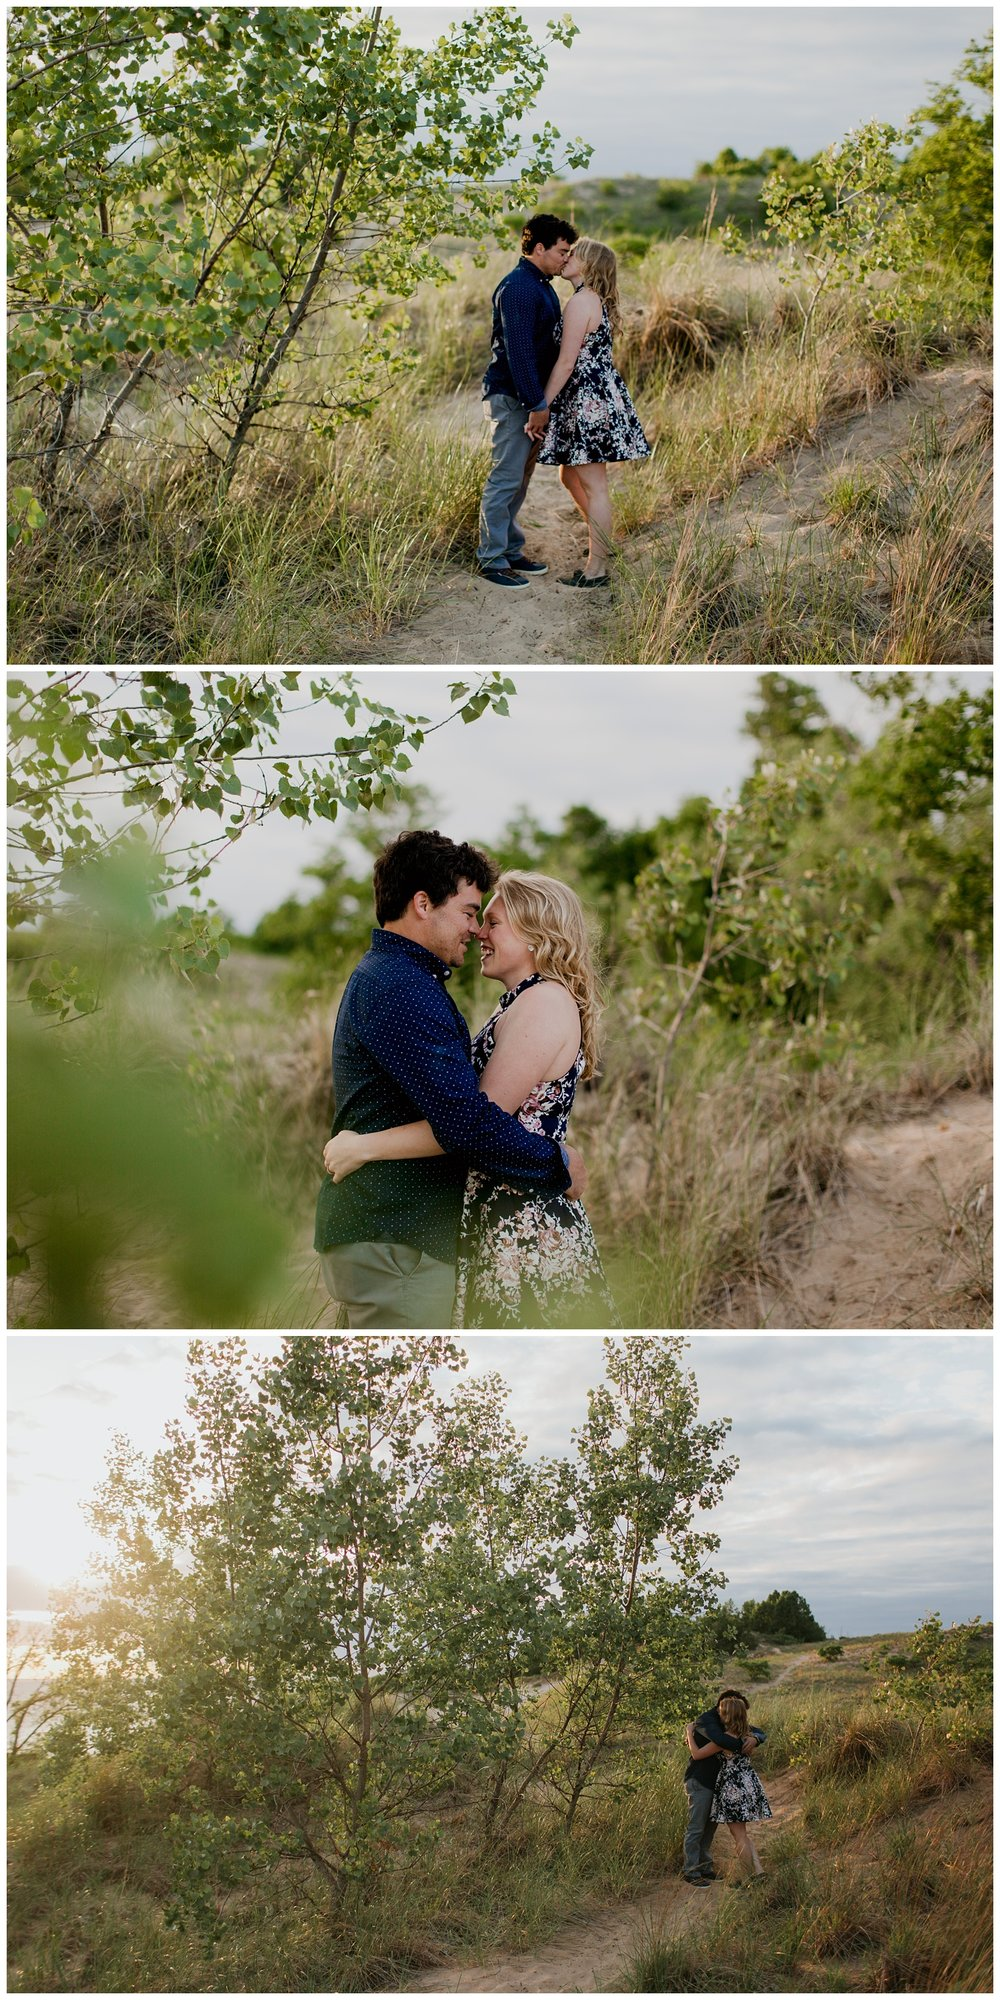 warrendunesengagementweddingphotographybridgmansawyerstevensvilletaborhillwinery10.jpg